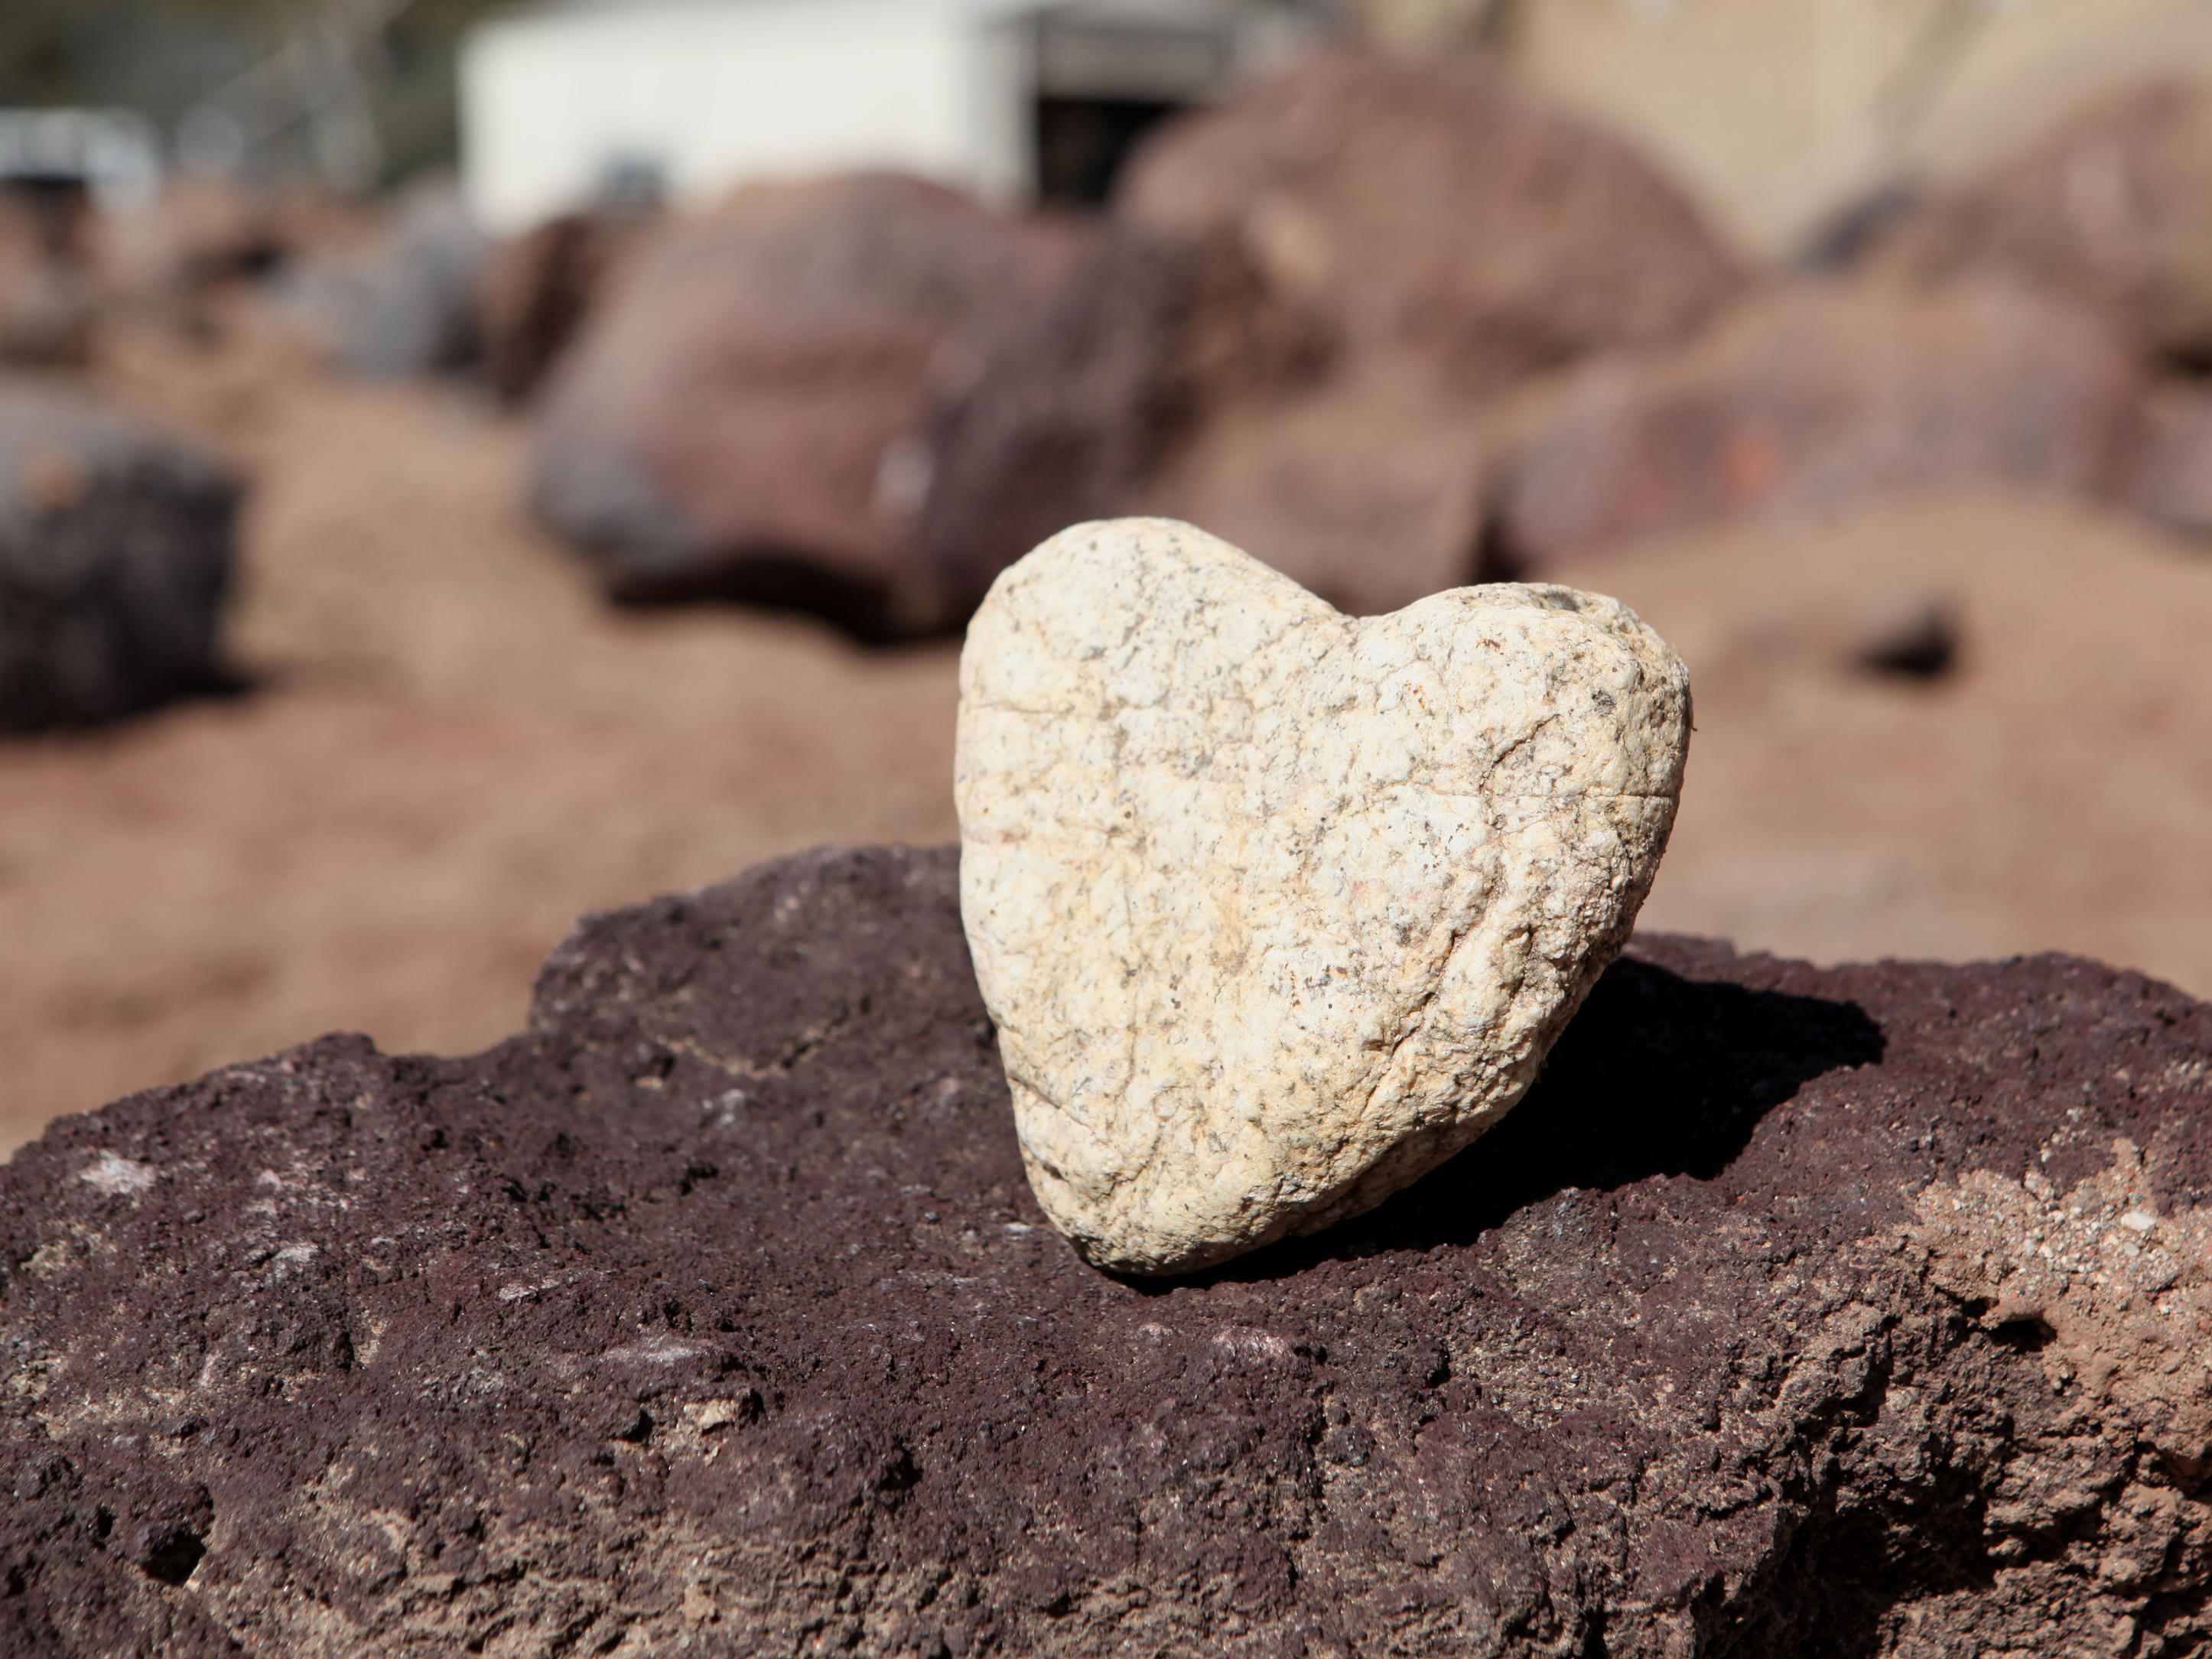 This heart-shaped granite rock was spotted in JPL's Mars Yard just in time for Valentine's Day.  Engineers were driving the Earth-bound copy of the Curiosity rover, informally named Maggie, for tests that day.